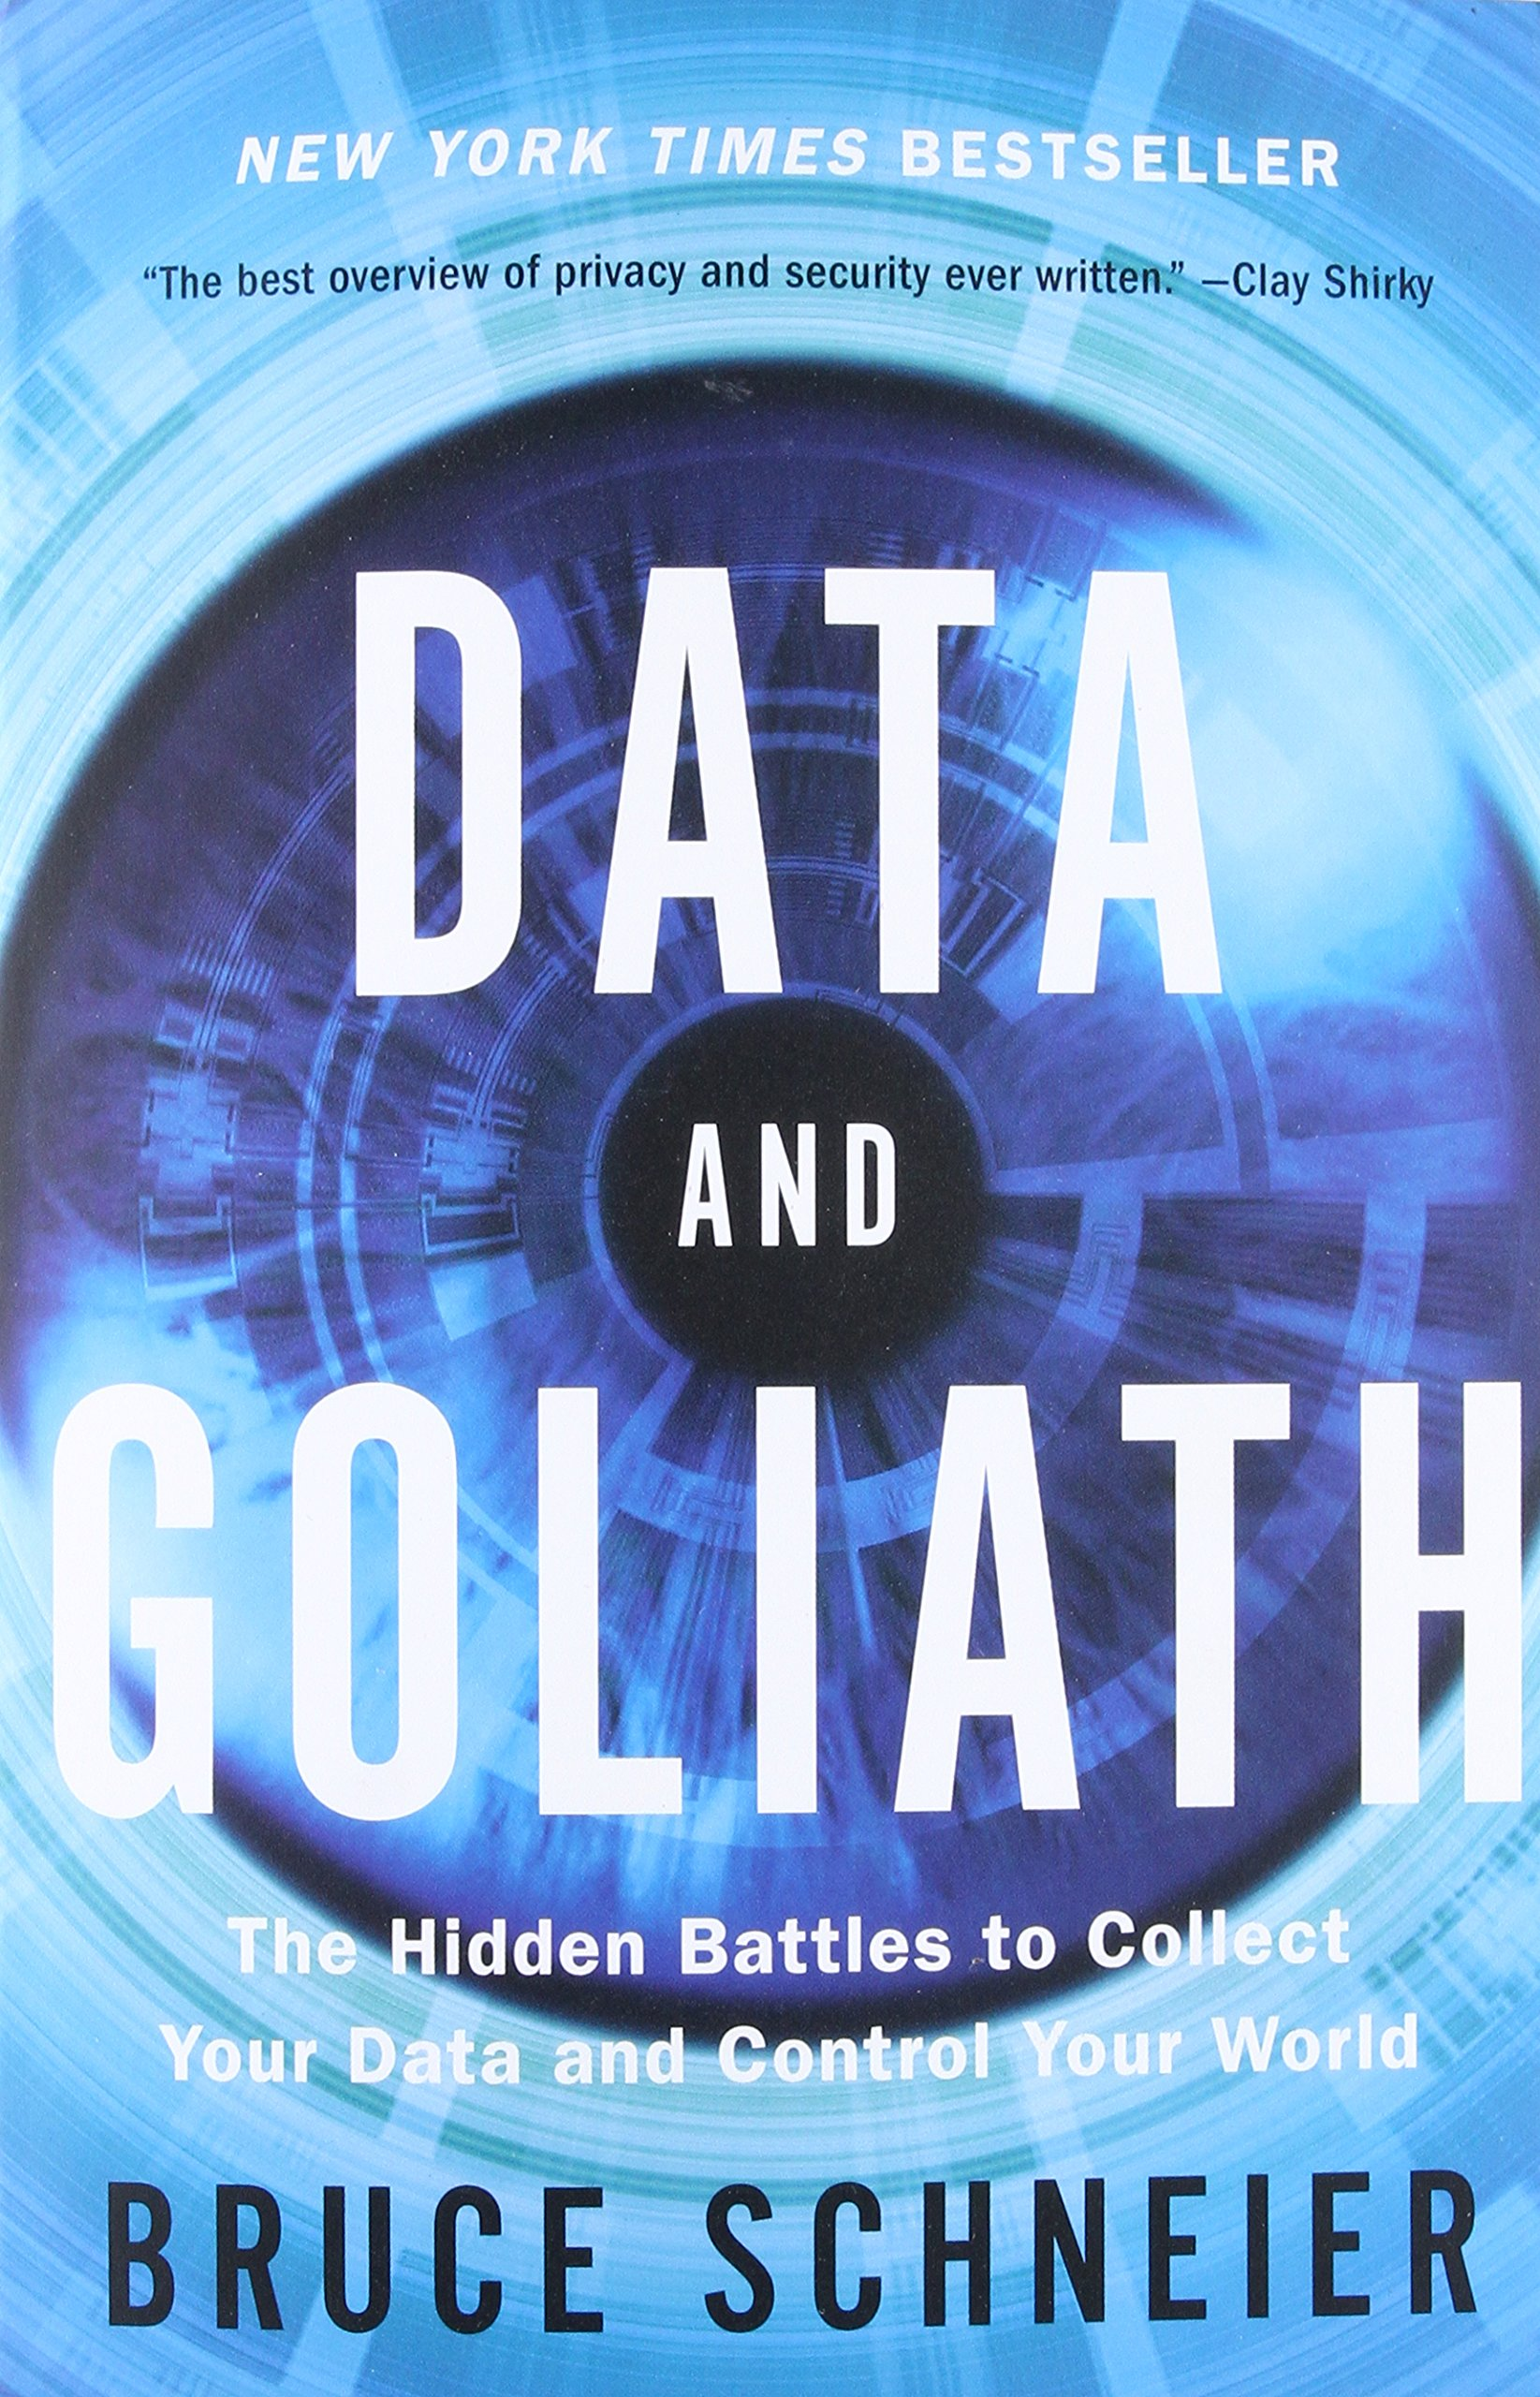 Data and Goliath: The Hidden Battles to Collect Your Data and Control Your World: Amazon.es: Bruce Schneier: Libros en idiomas extranjeros